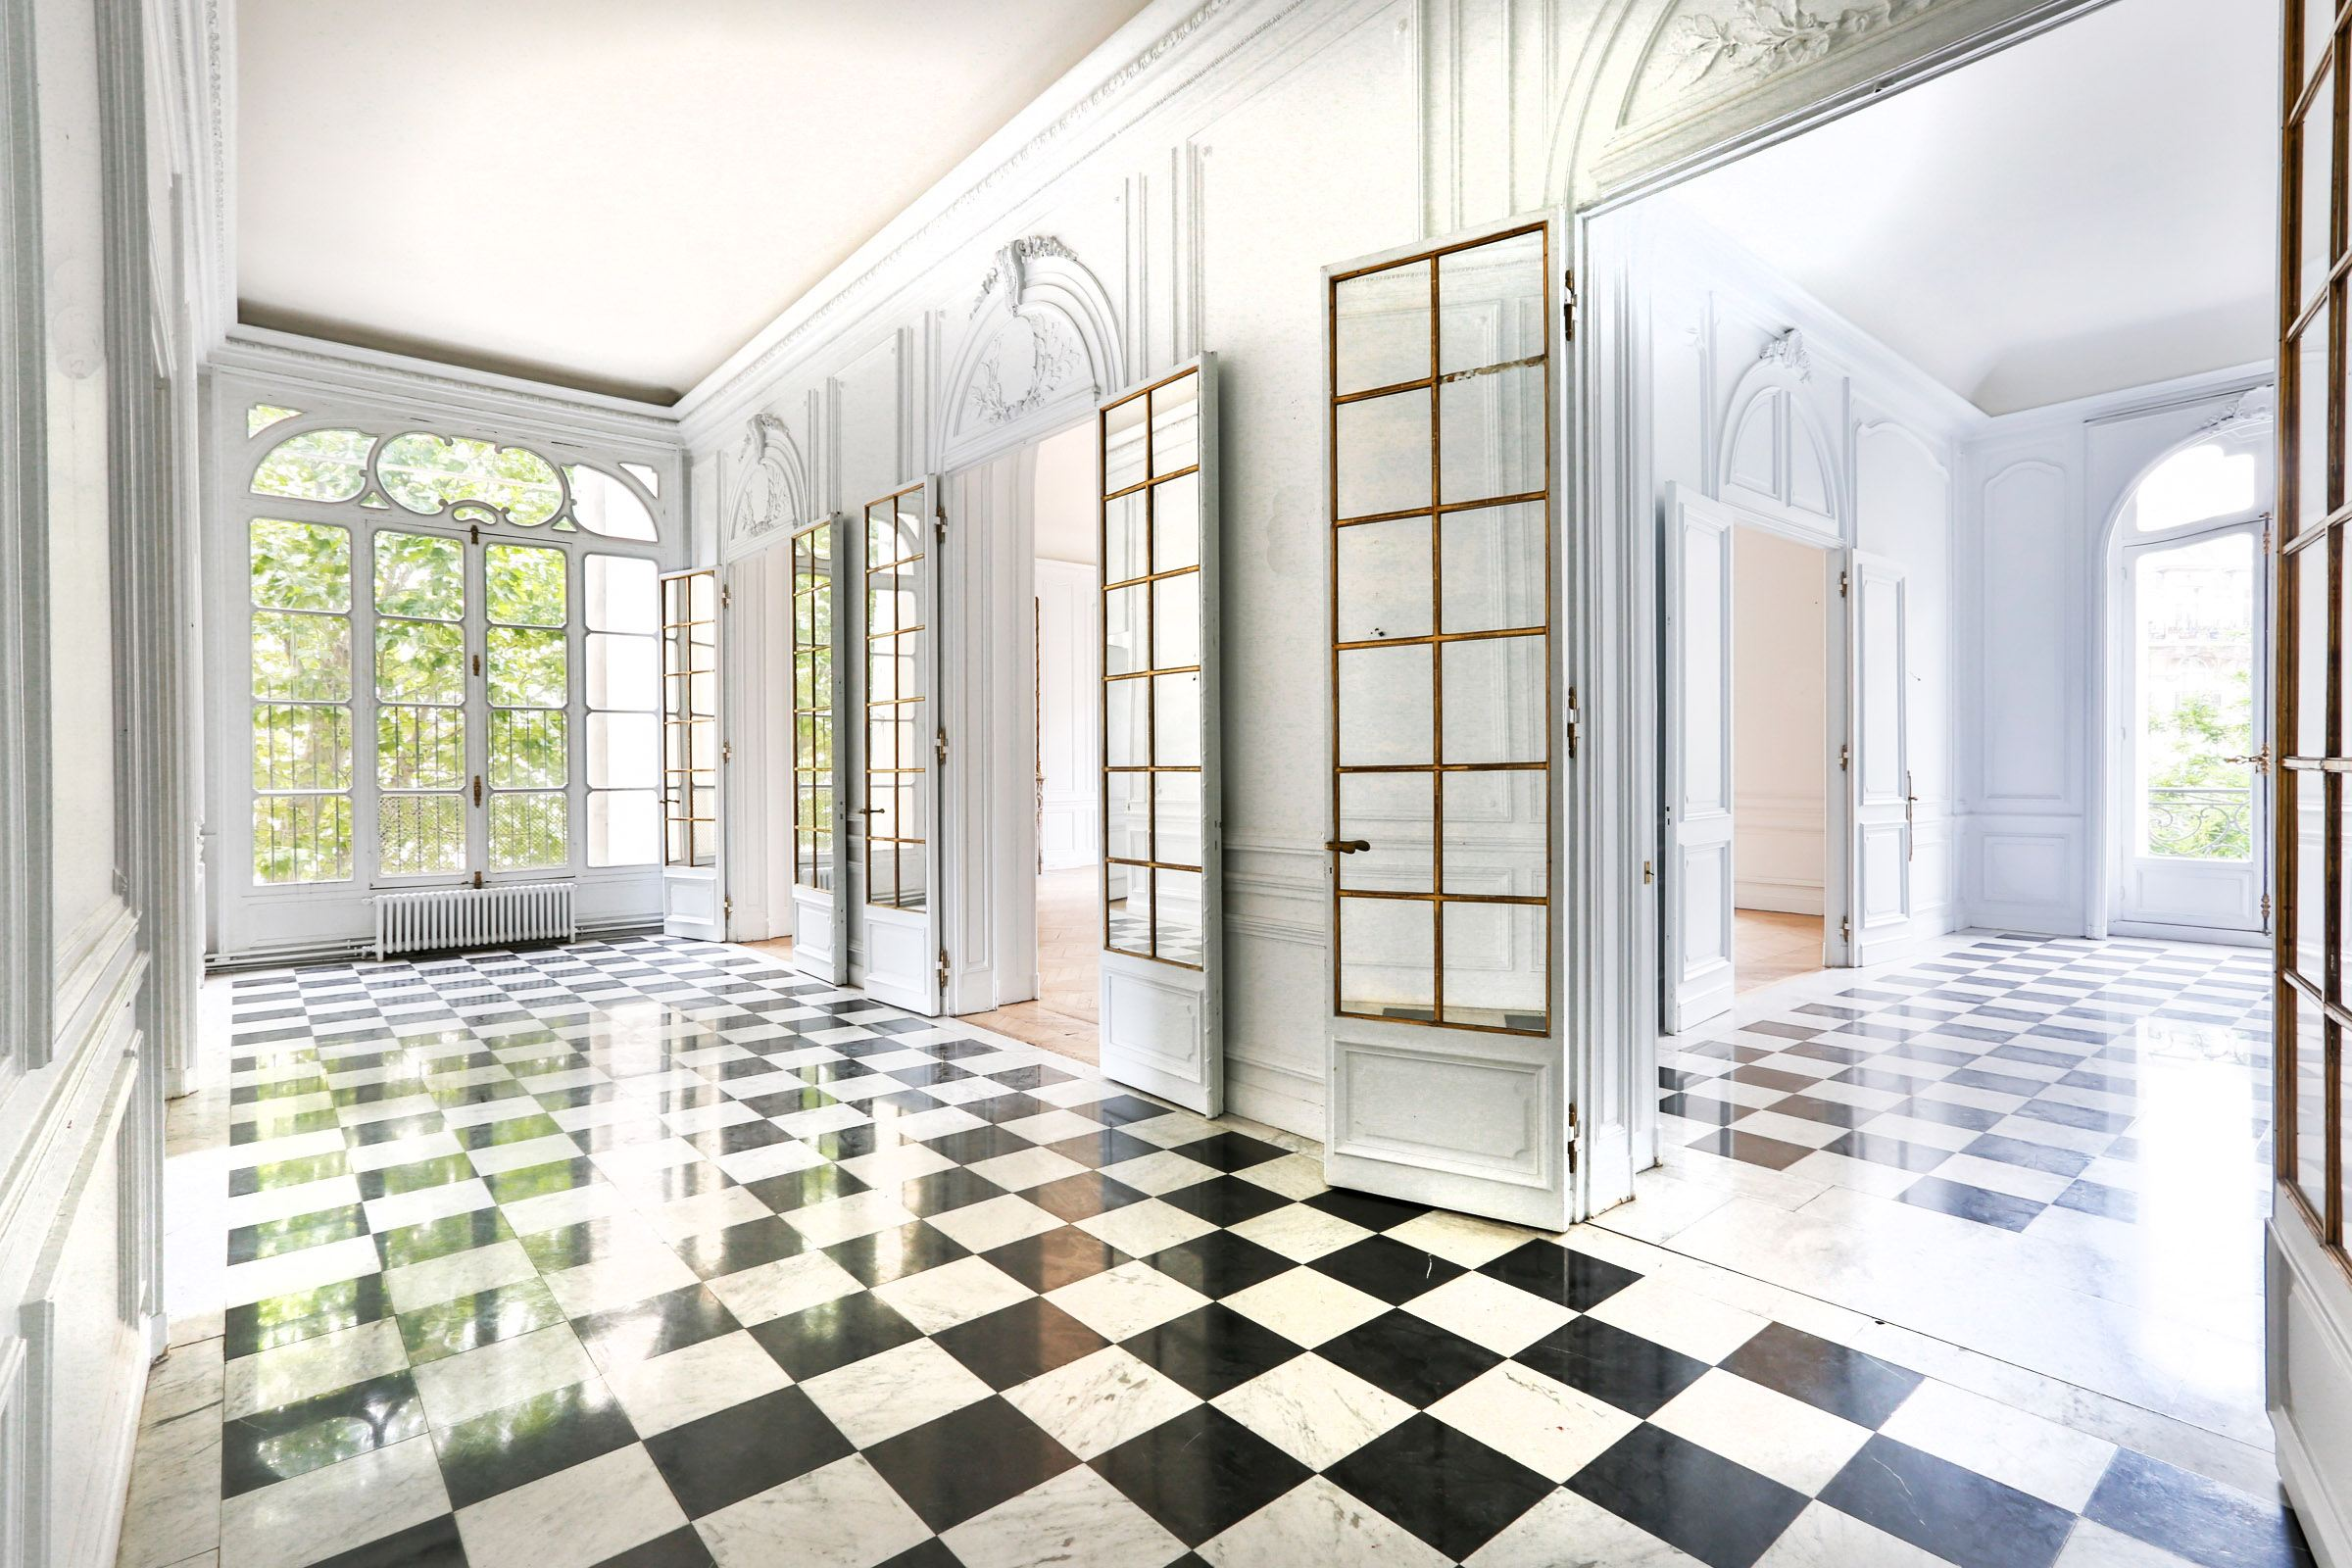 Appartamento per Vendita alle ore Paris 16 - Victor Hugo square. Apartment to renovate. Paris, Parigi 75116 Francia